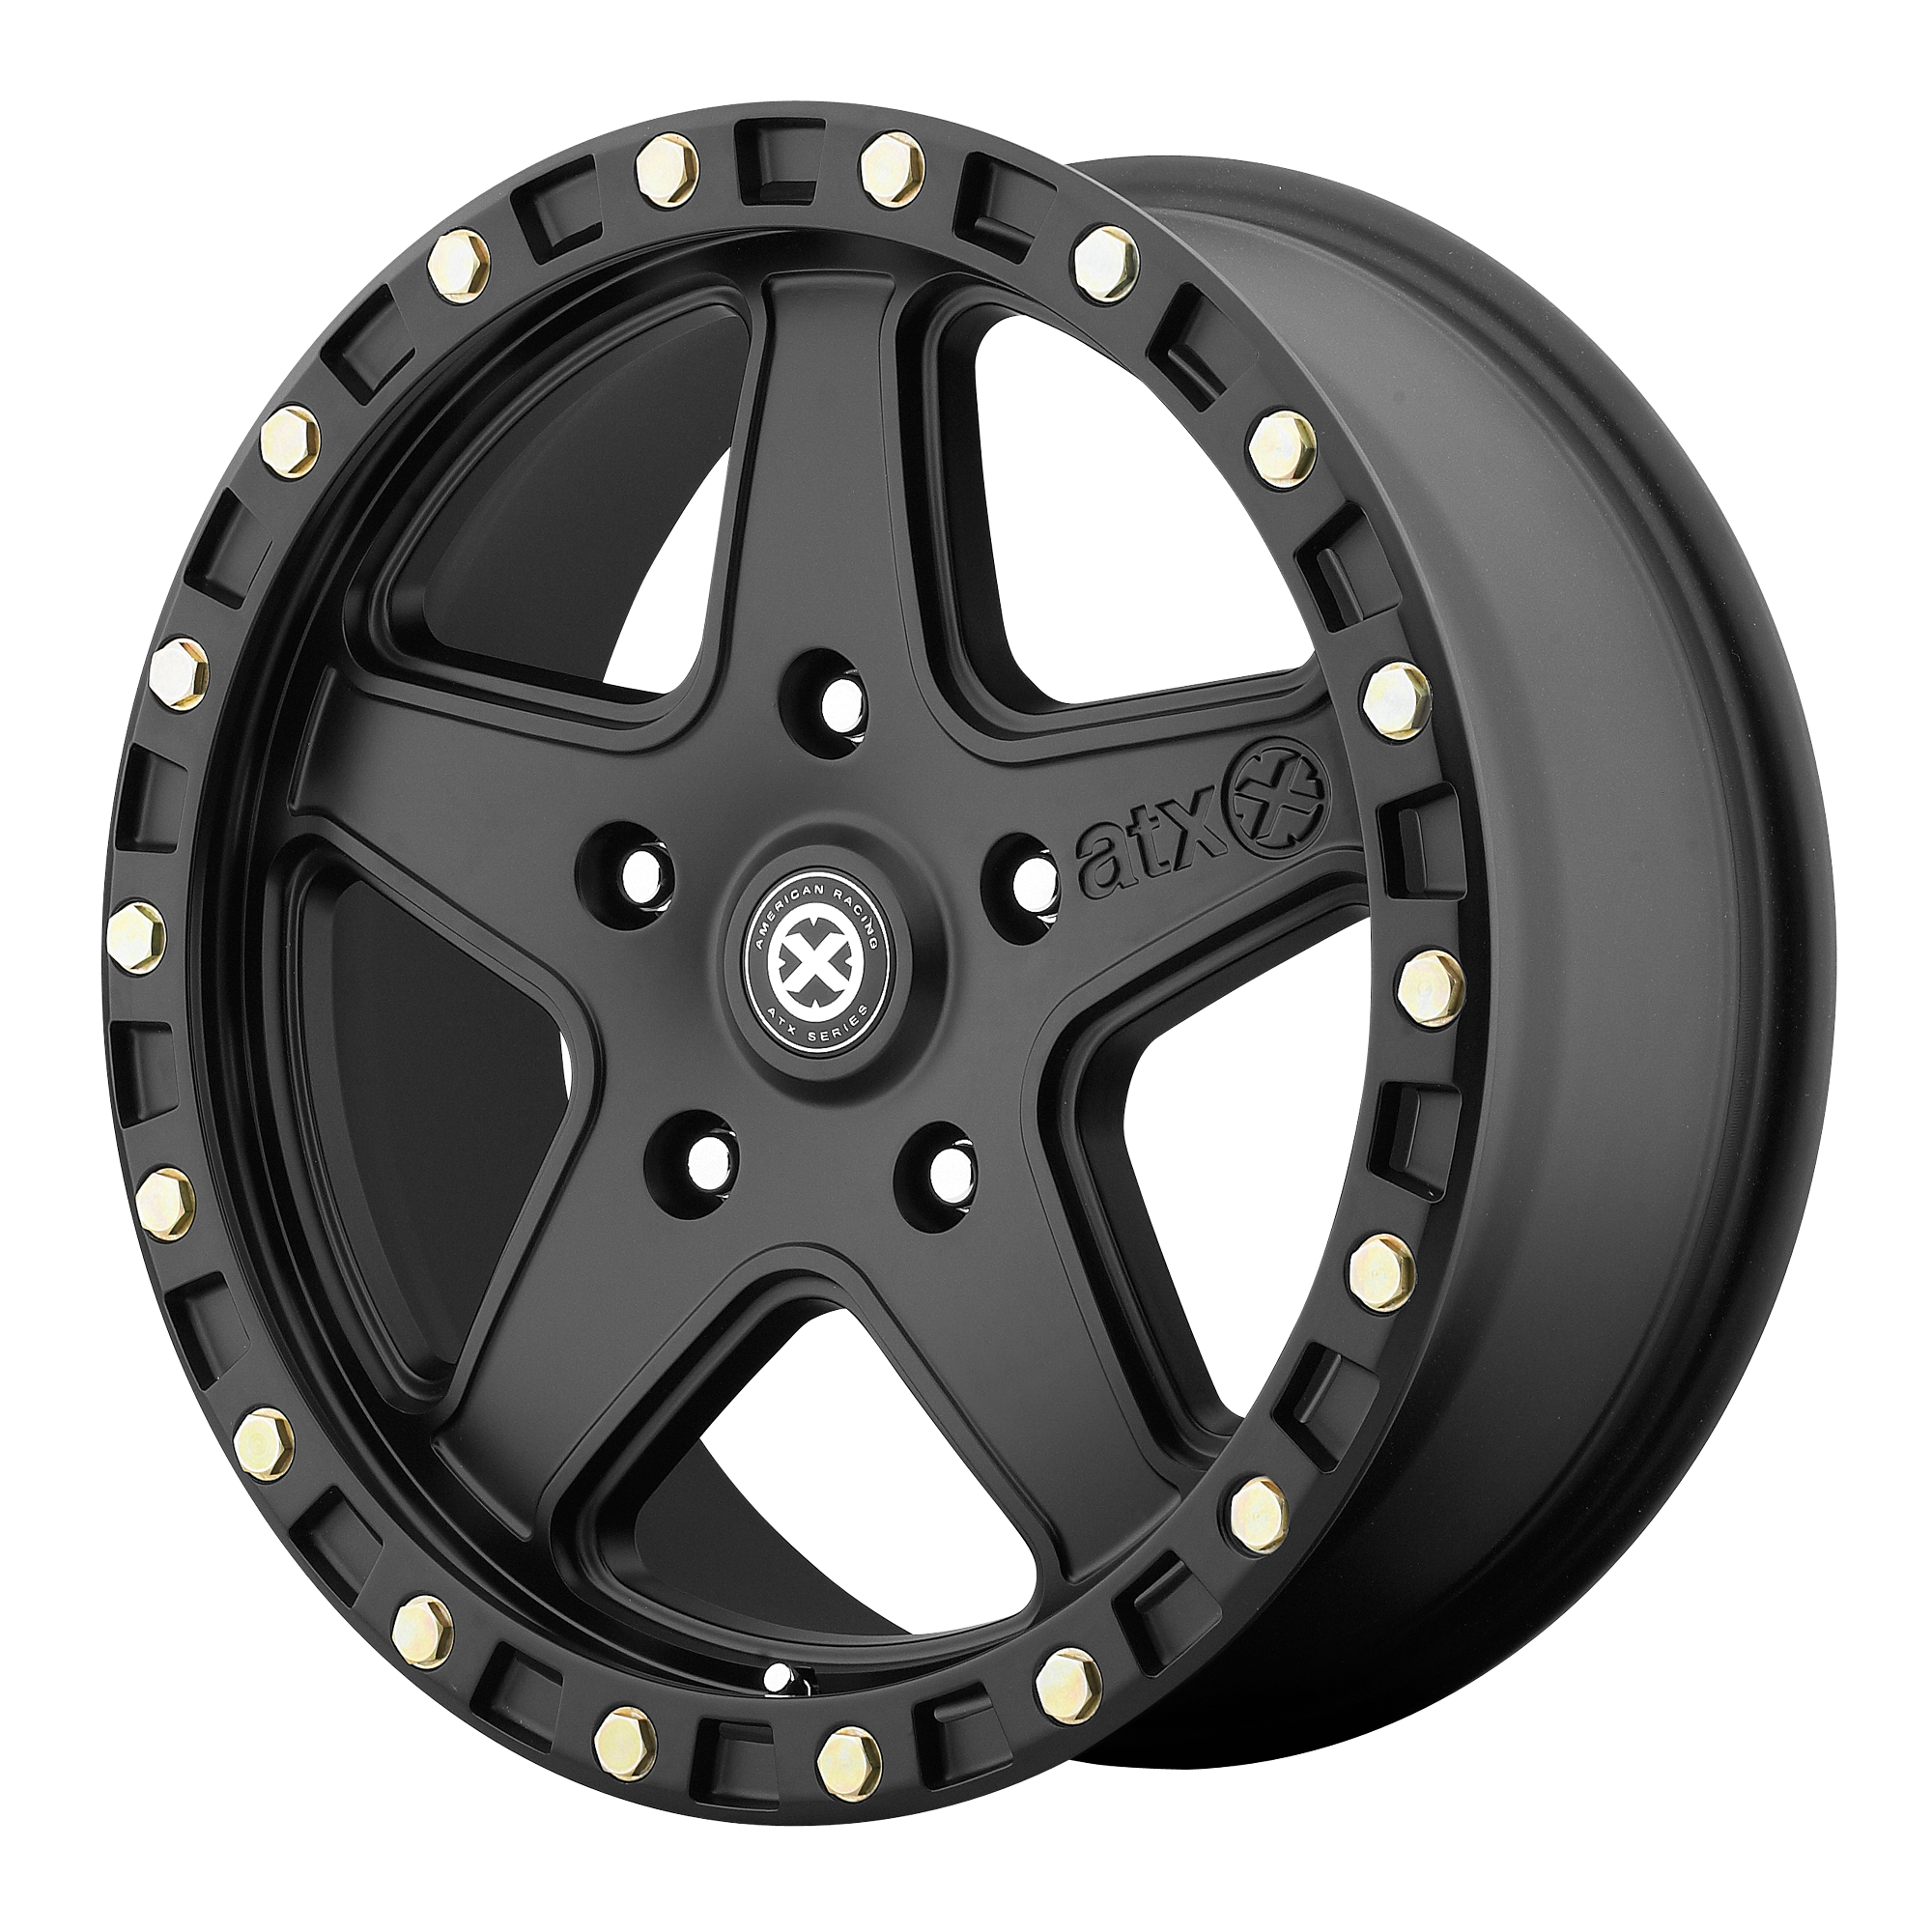 ATX Series Offroad Wheels RAVINE Textured Black